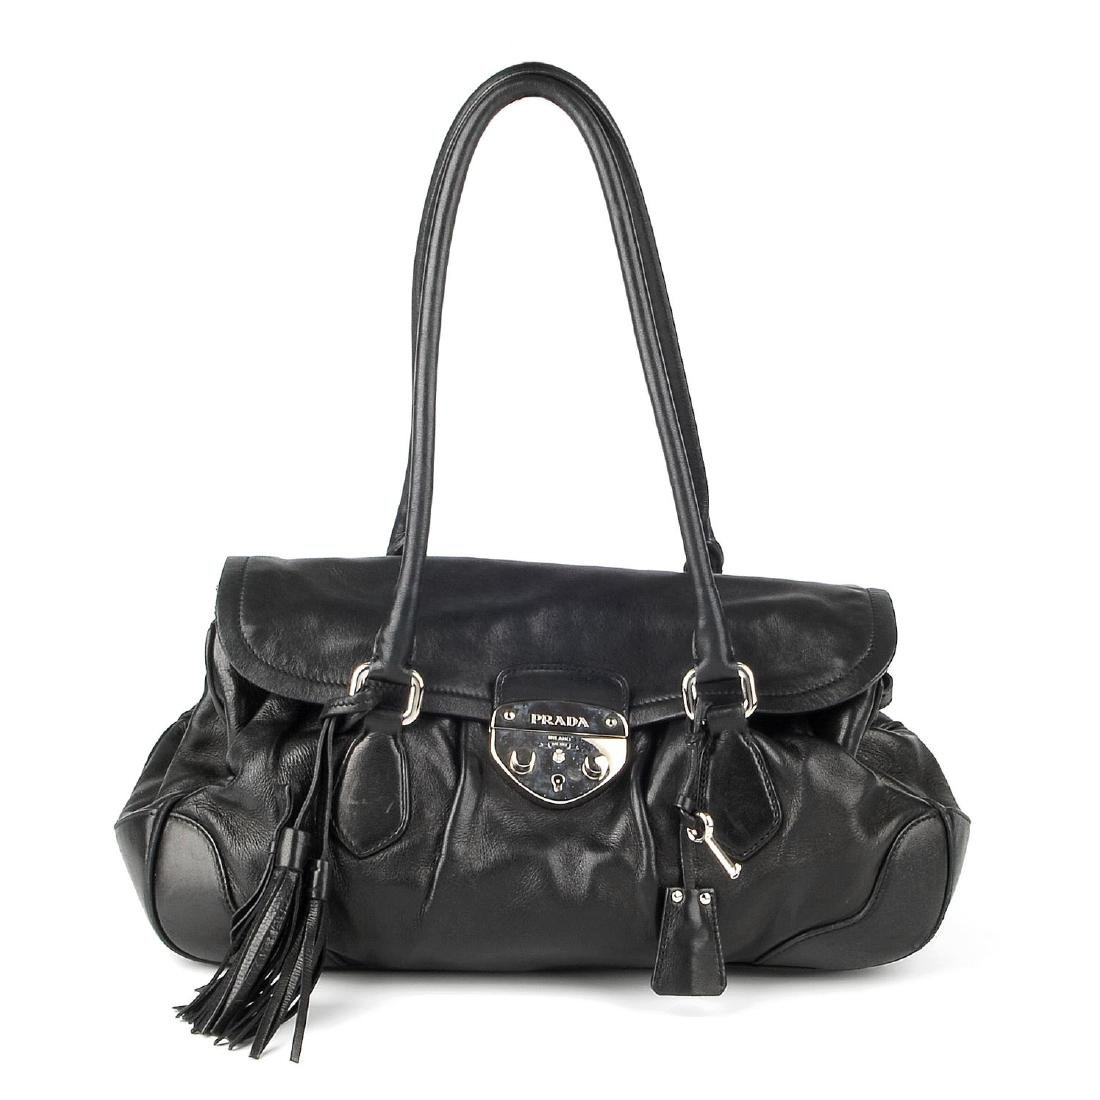 PRADA - a black leather Pushlock Tassel Flap handbag.